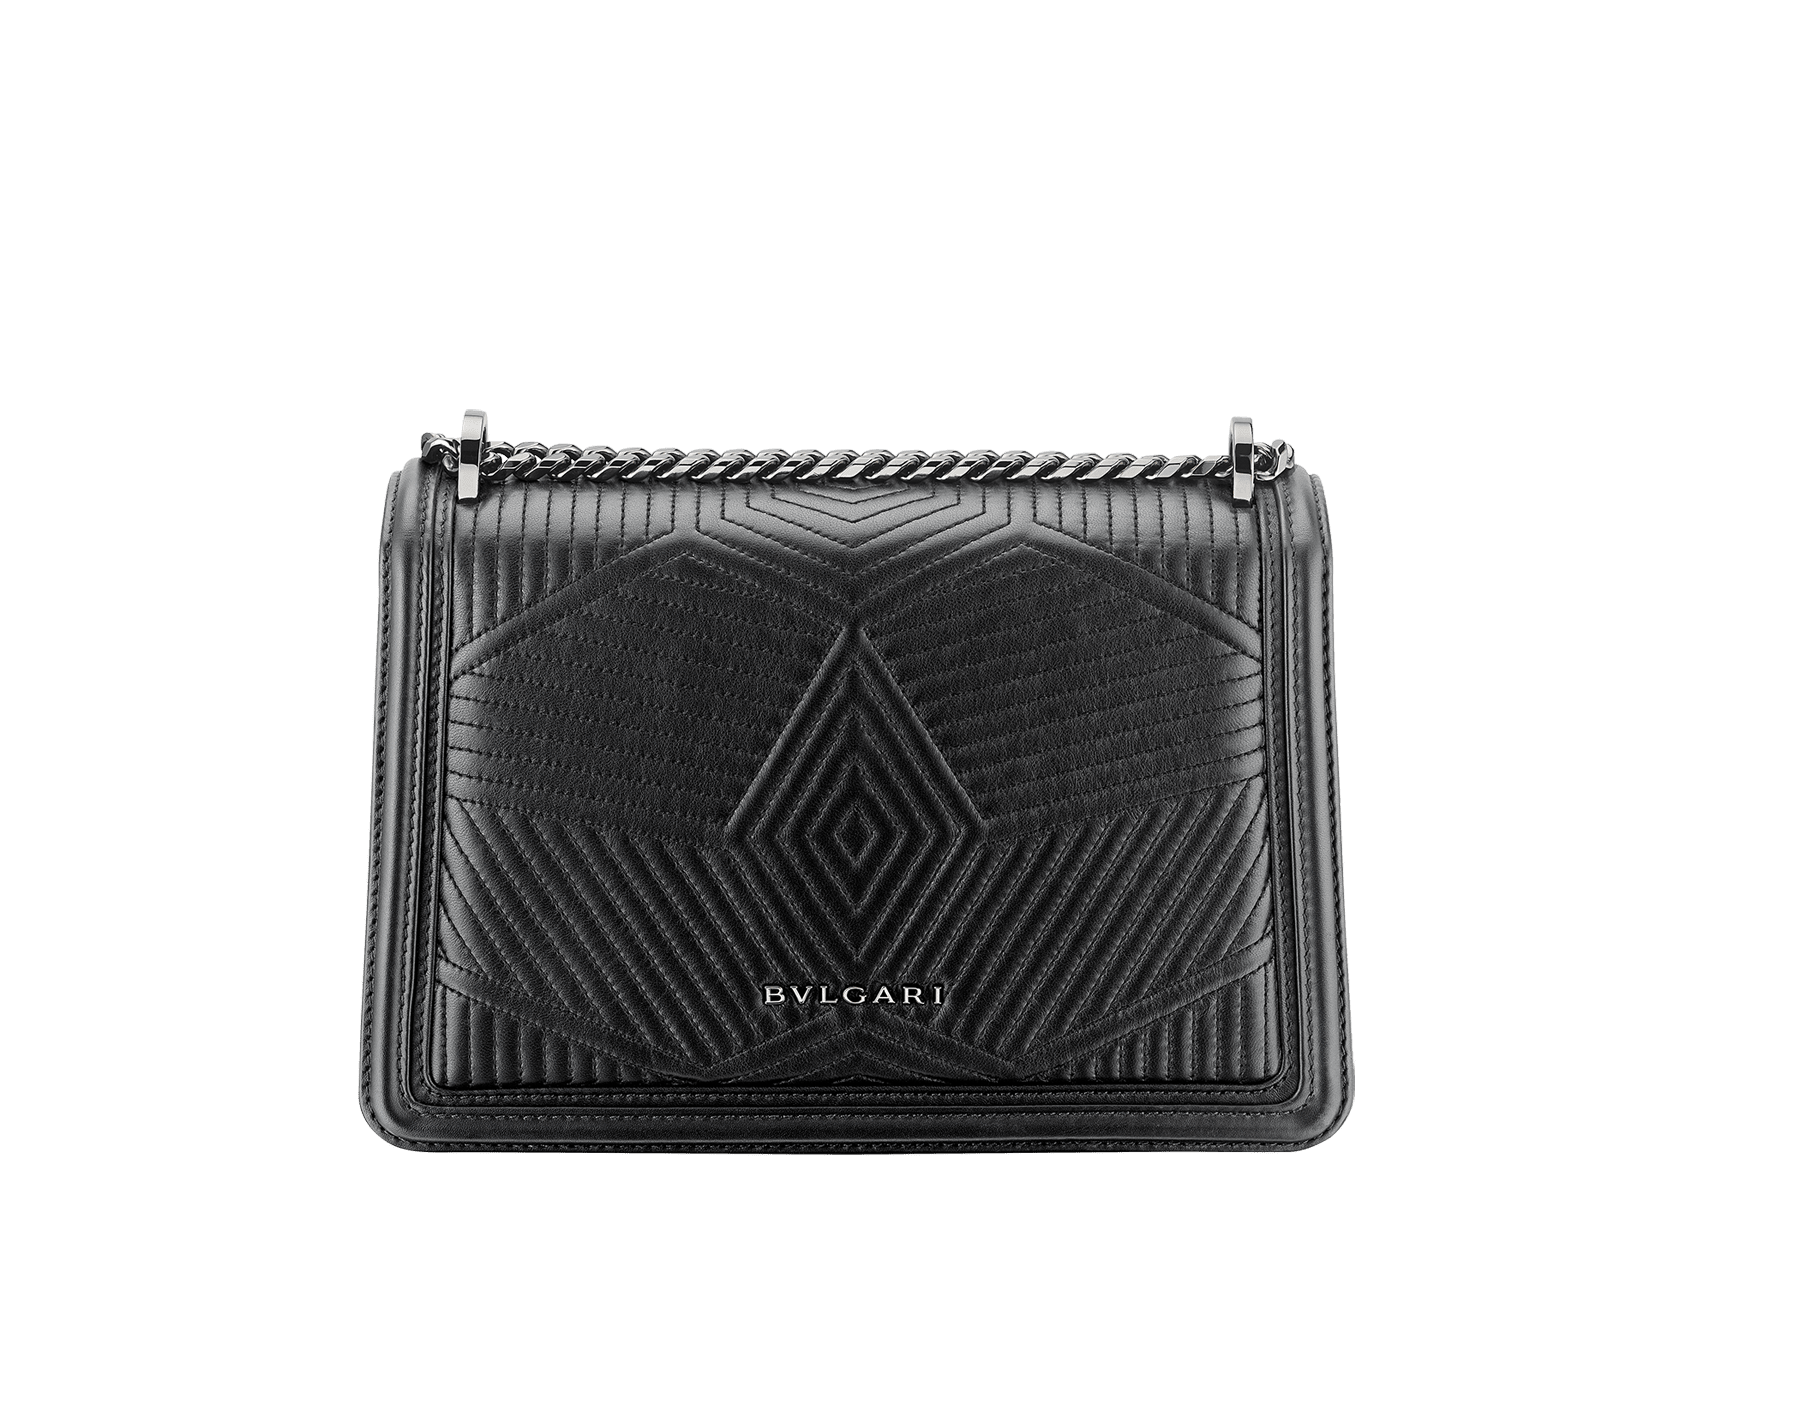 """Serpenti Diamond Blast"" shoulder bag in black quilted nappa leather body and black calf leather frames. Iconic snakehead closure in dark ruthenium plated brass enriched with black and white enamel and black onyx eyes. 287371 image 4"